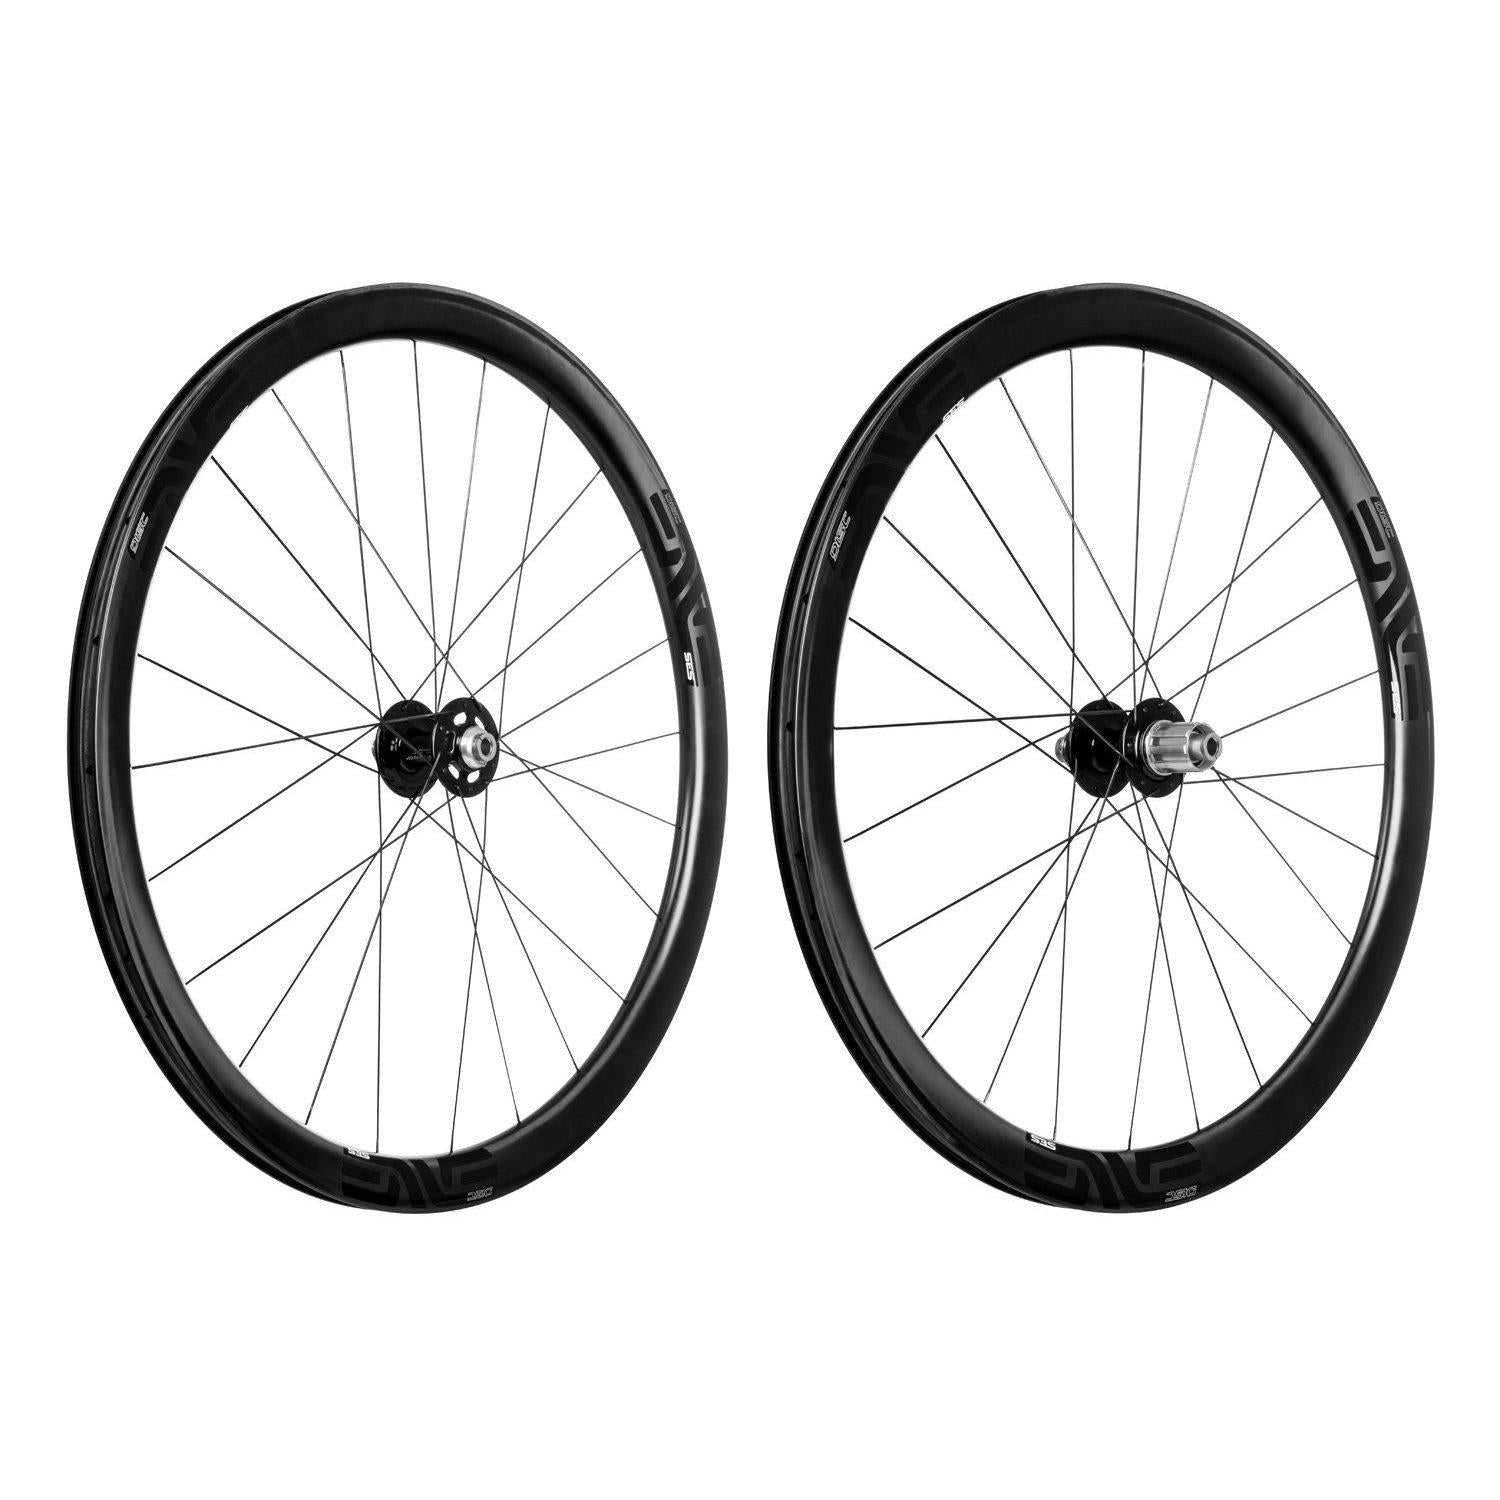 ENVE-ENVE SES 3.4 Disc Wheelset - ENVE Alloy Road Hubs-Clincher/Shimano-EN00341003110048-saddleback-elite-performance-cycling